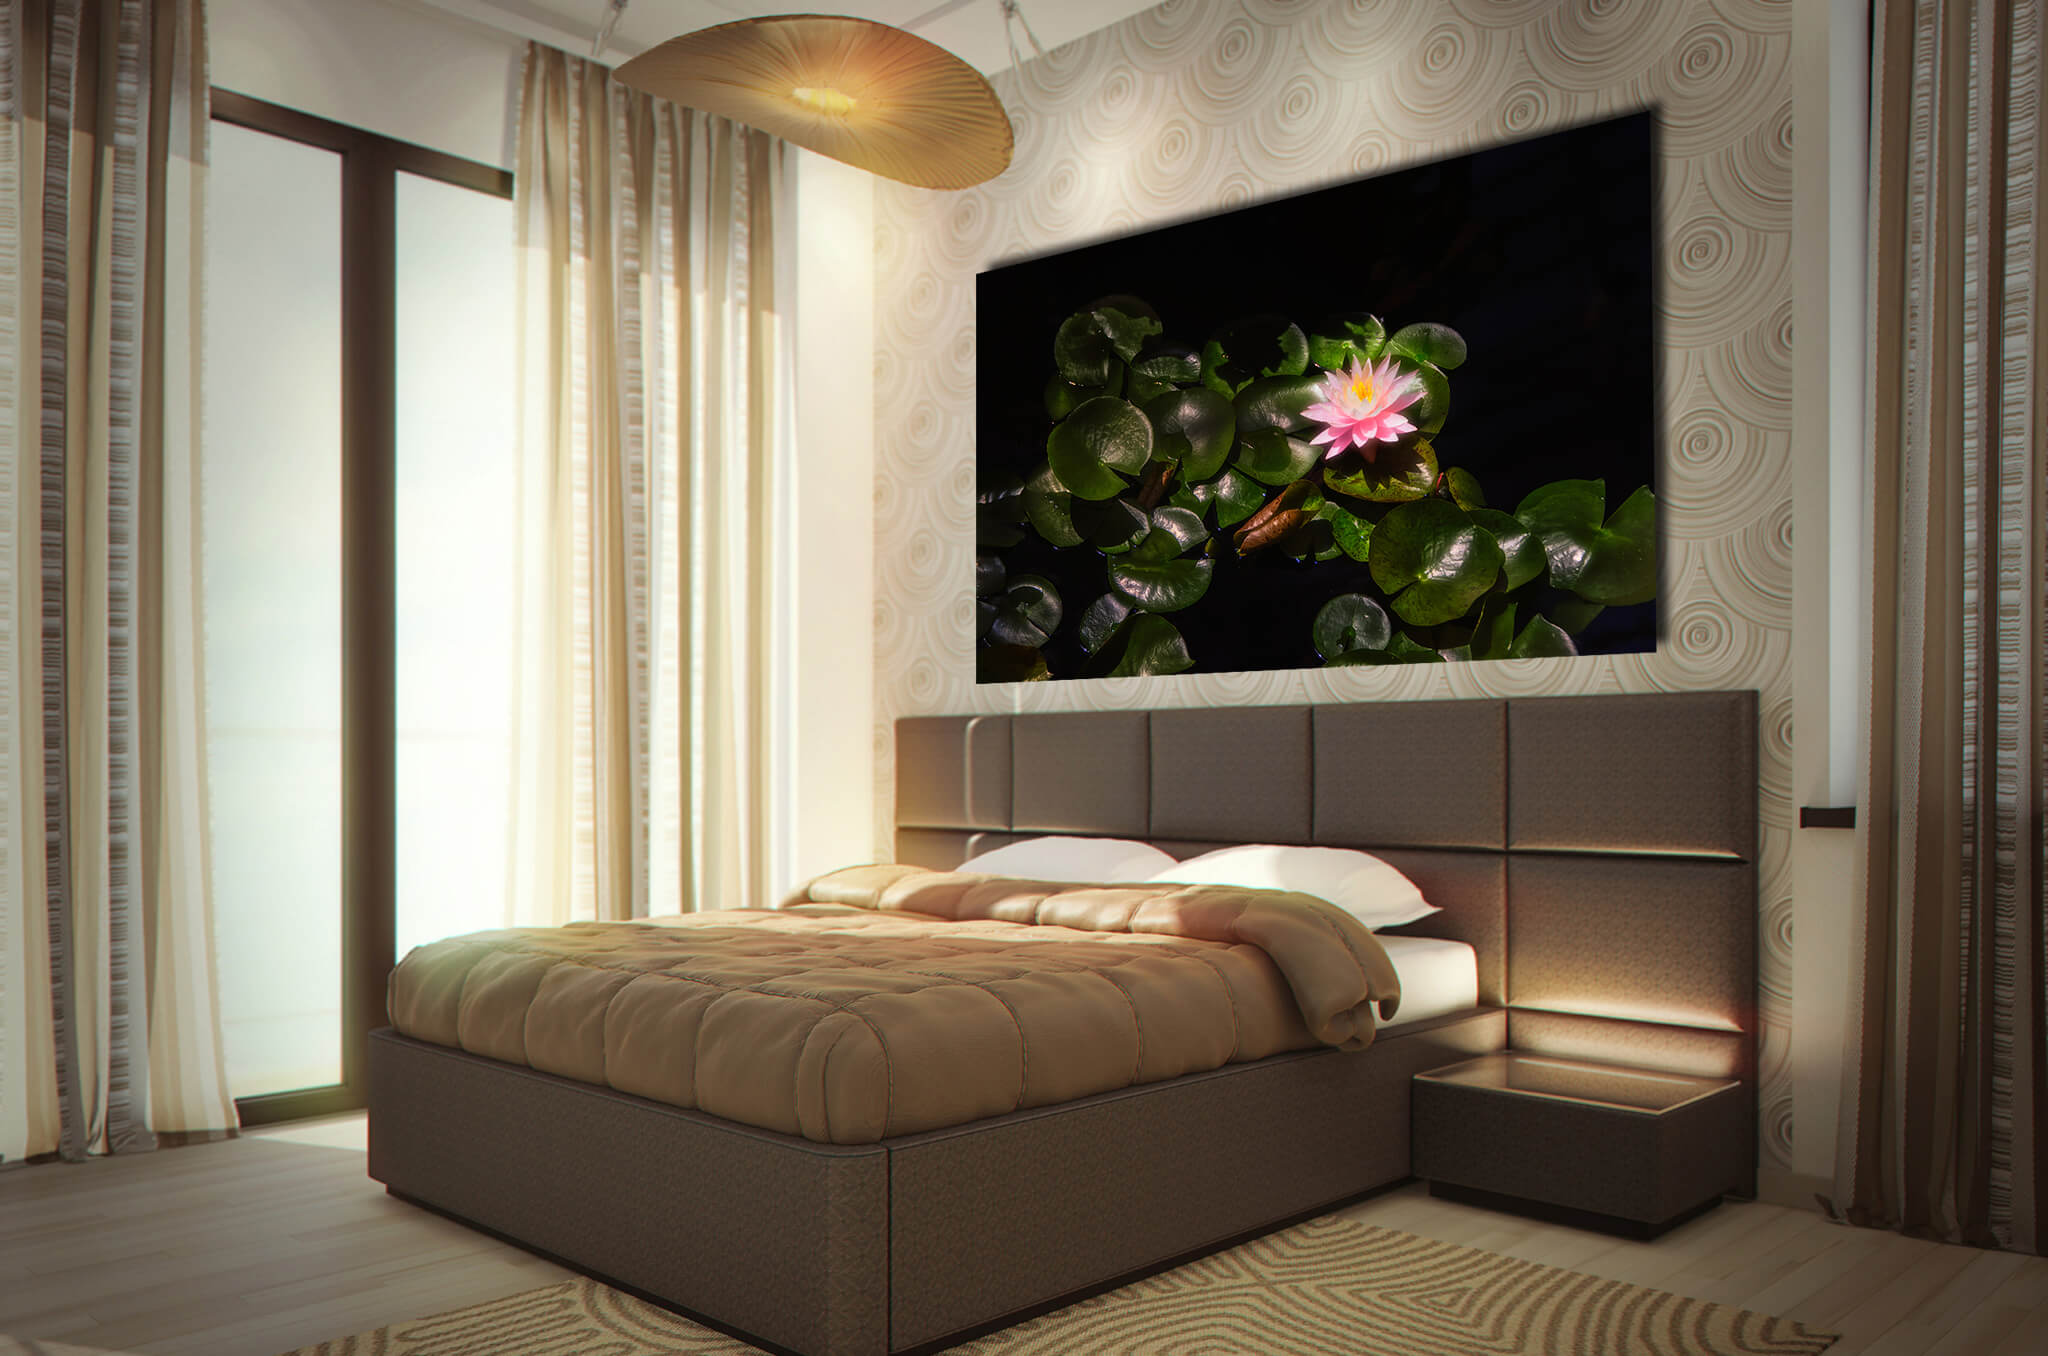 Bedroom wall art art ideas for bedroom franklin arts A wall painting